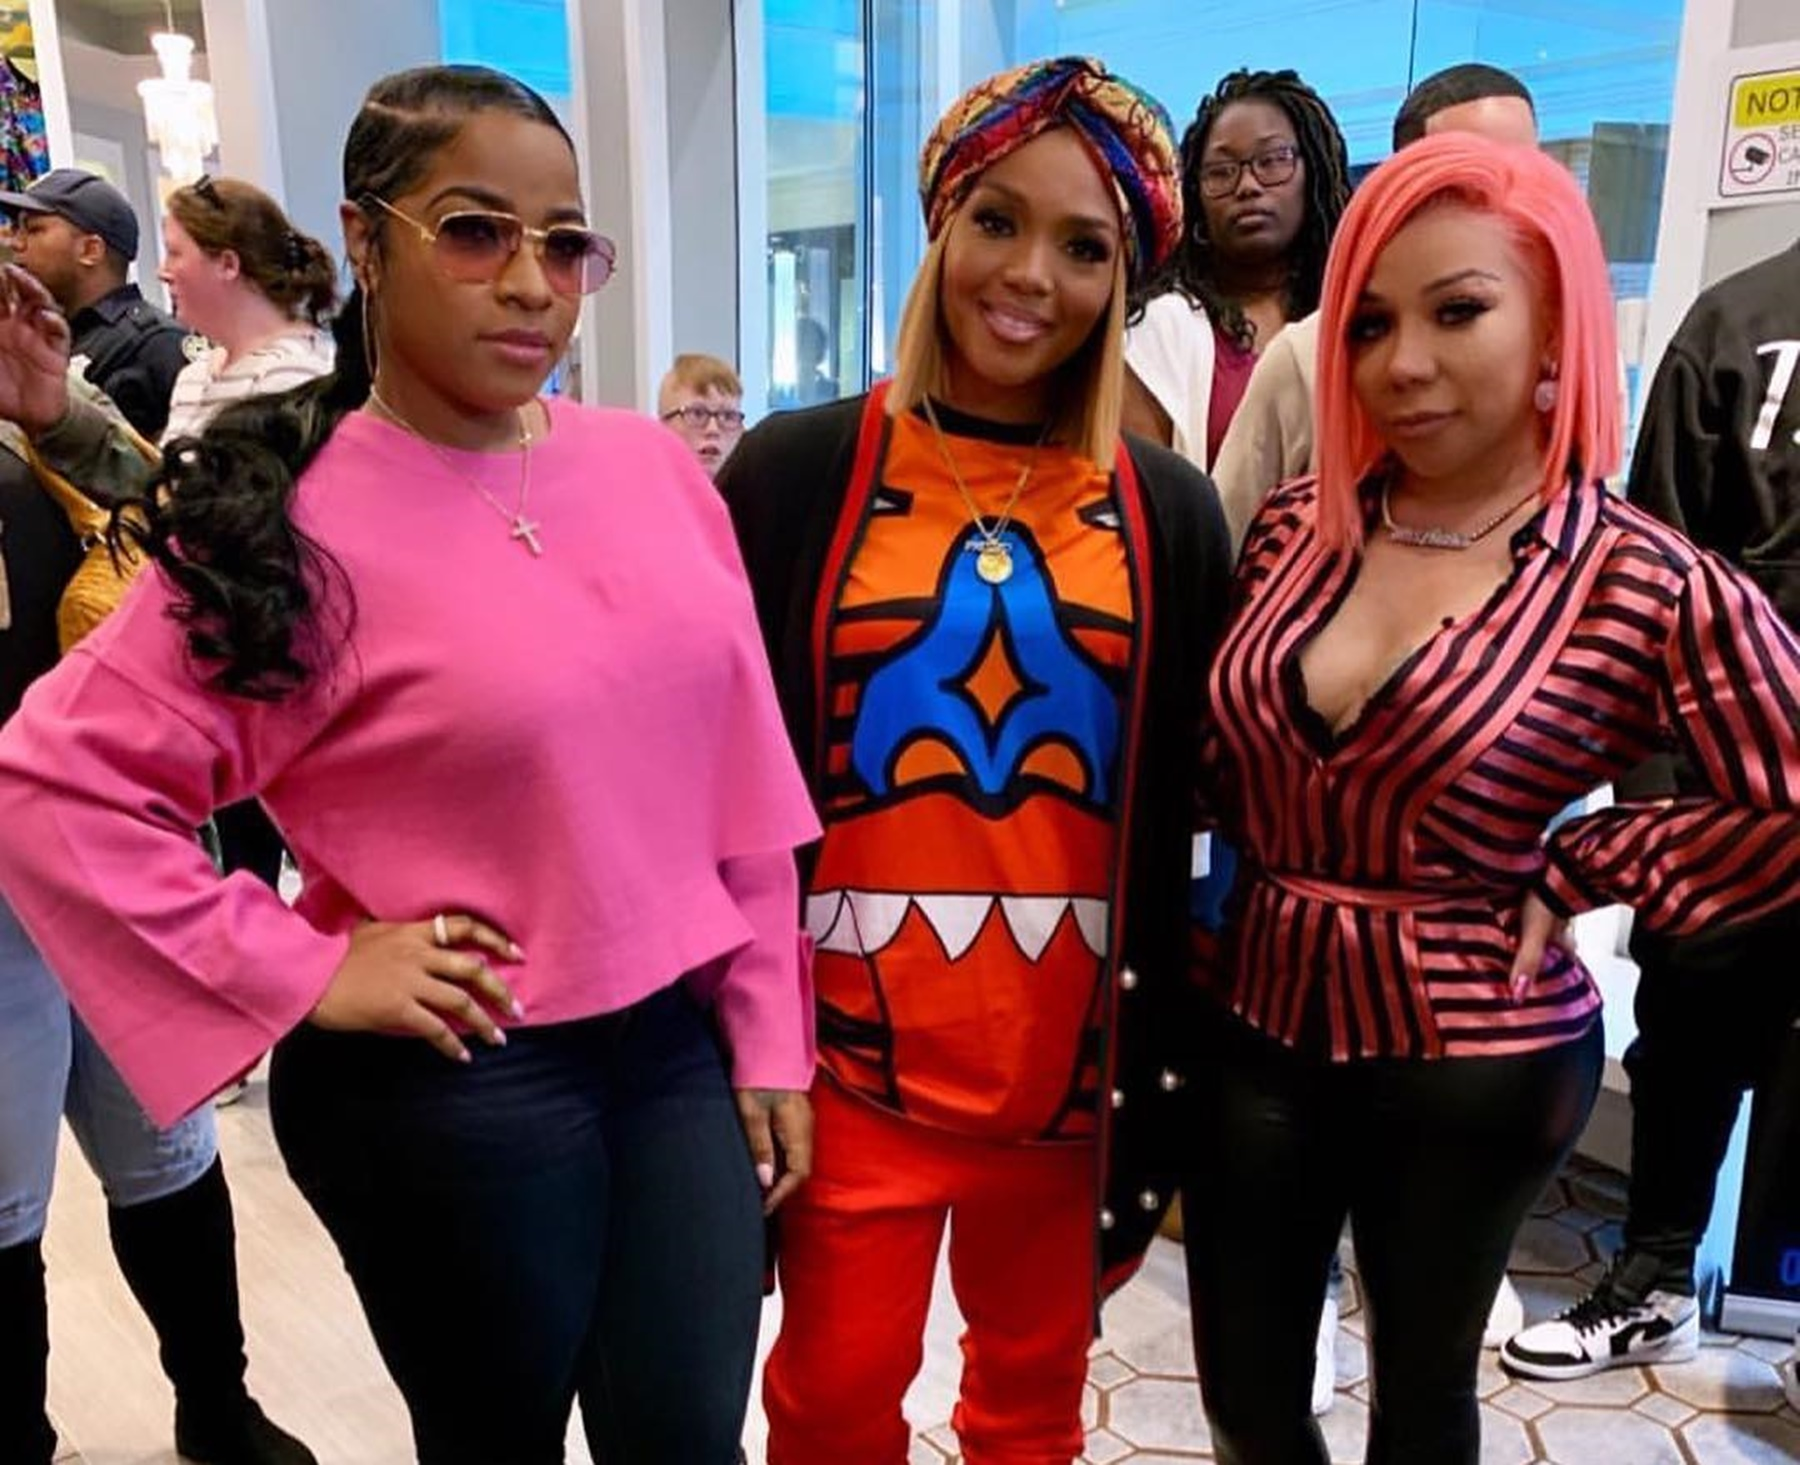 tiny-harris-and-toya-wright-are-celebrating-rasheeda-frosts-birthday-with-uplifting-messages